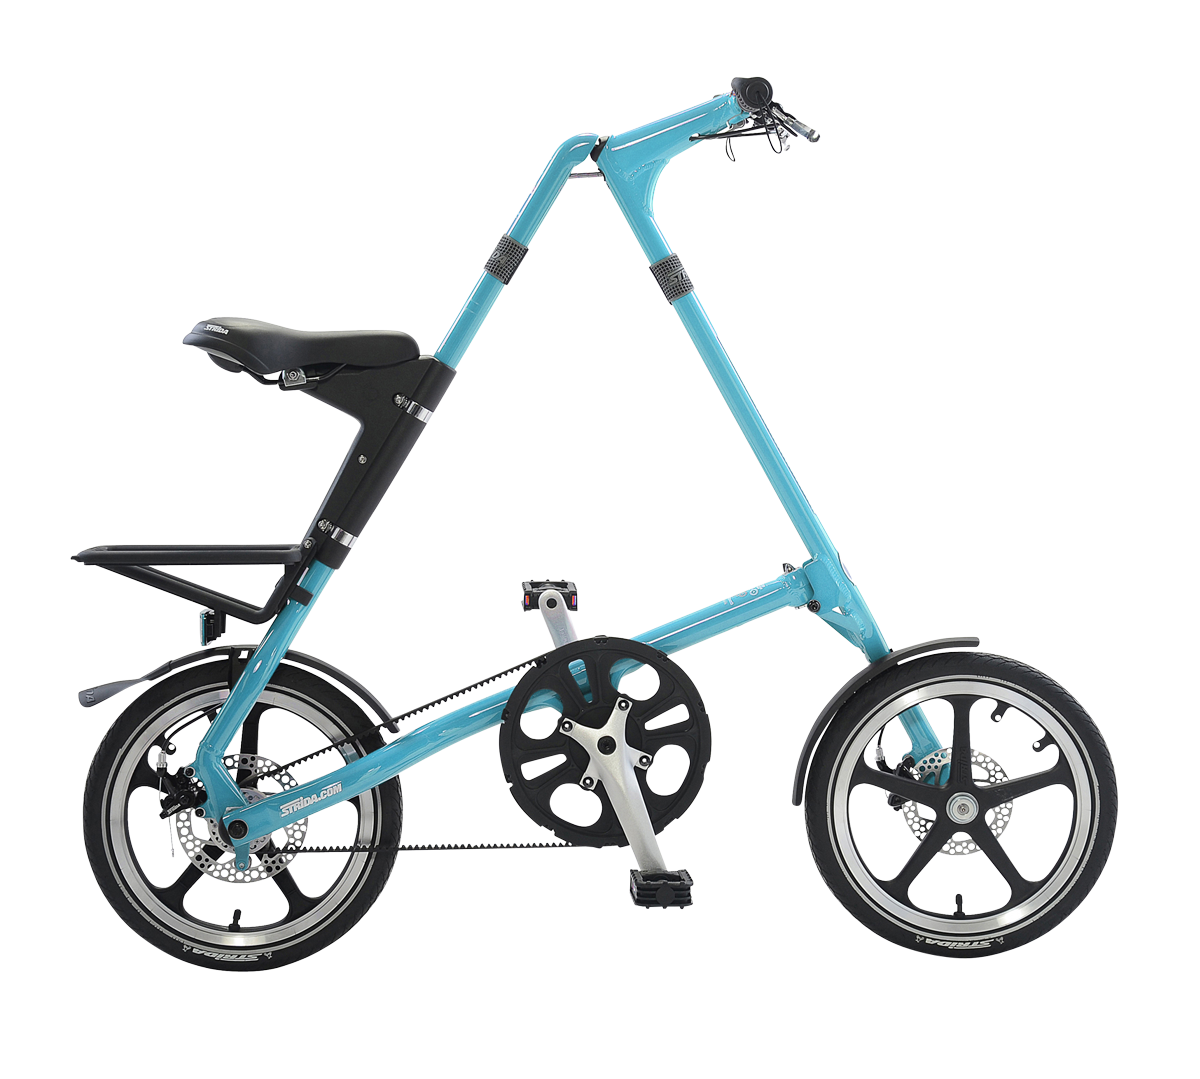 STRiDA LT Folding Bicycle, Turquoise-0